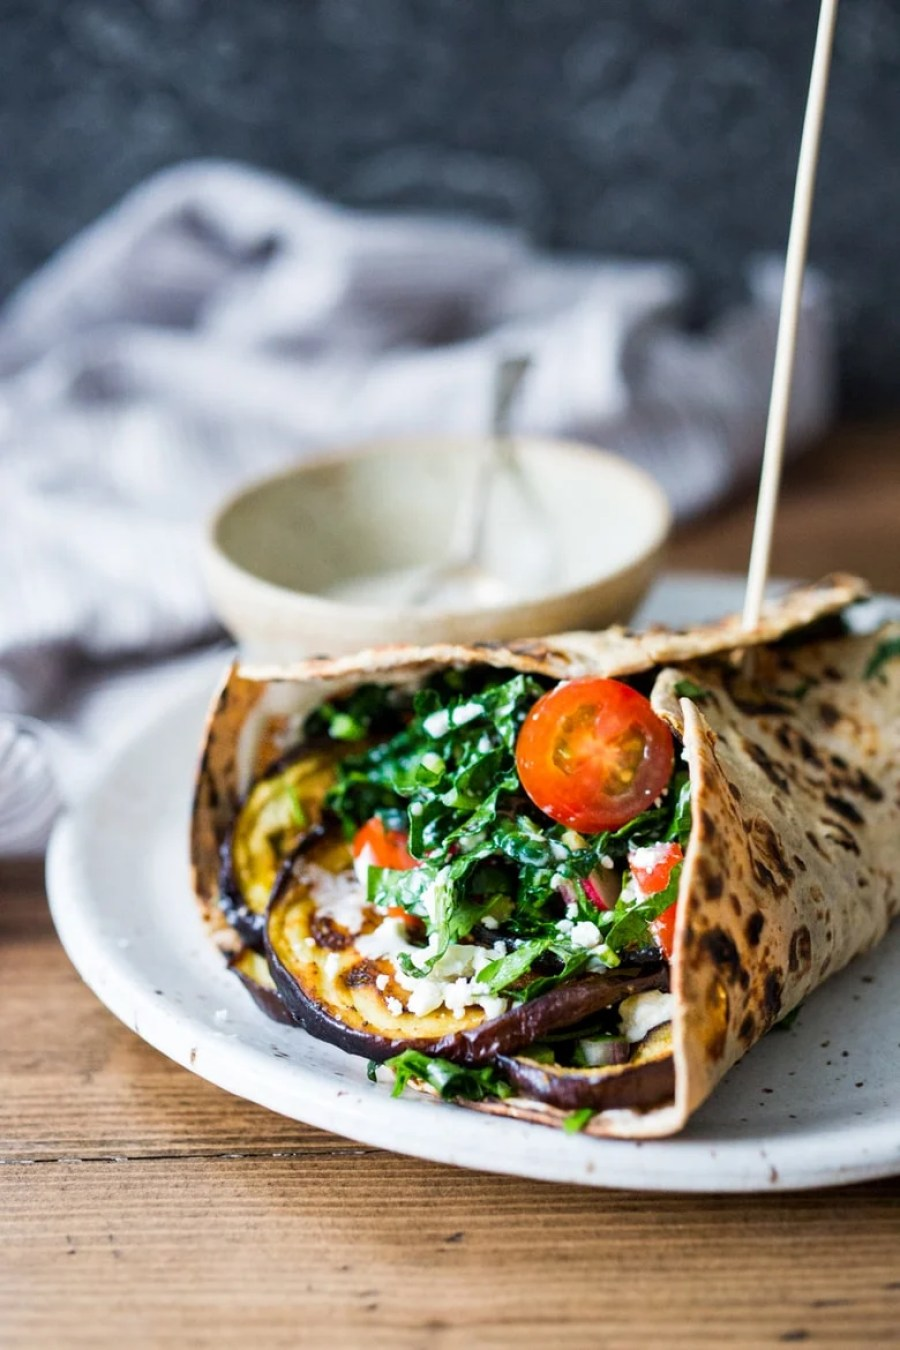 10 Plant Based Clean Eating Recipes like this Grilled Eggplant Wrap with Kale Parsley Slaw and Tahini Sauce | www.feastingathome.com